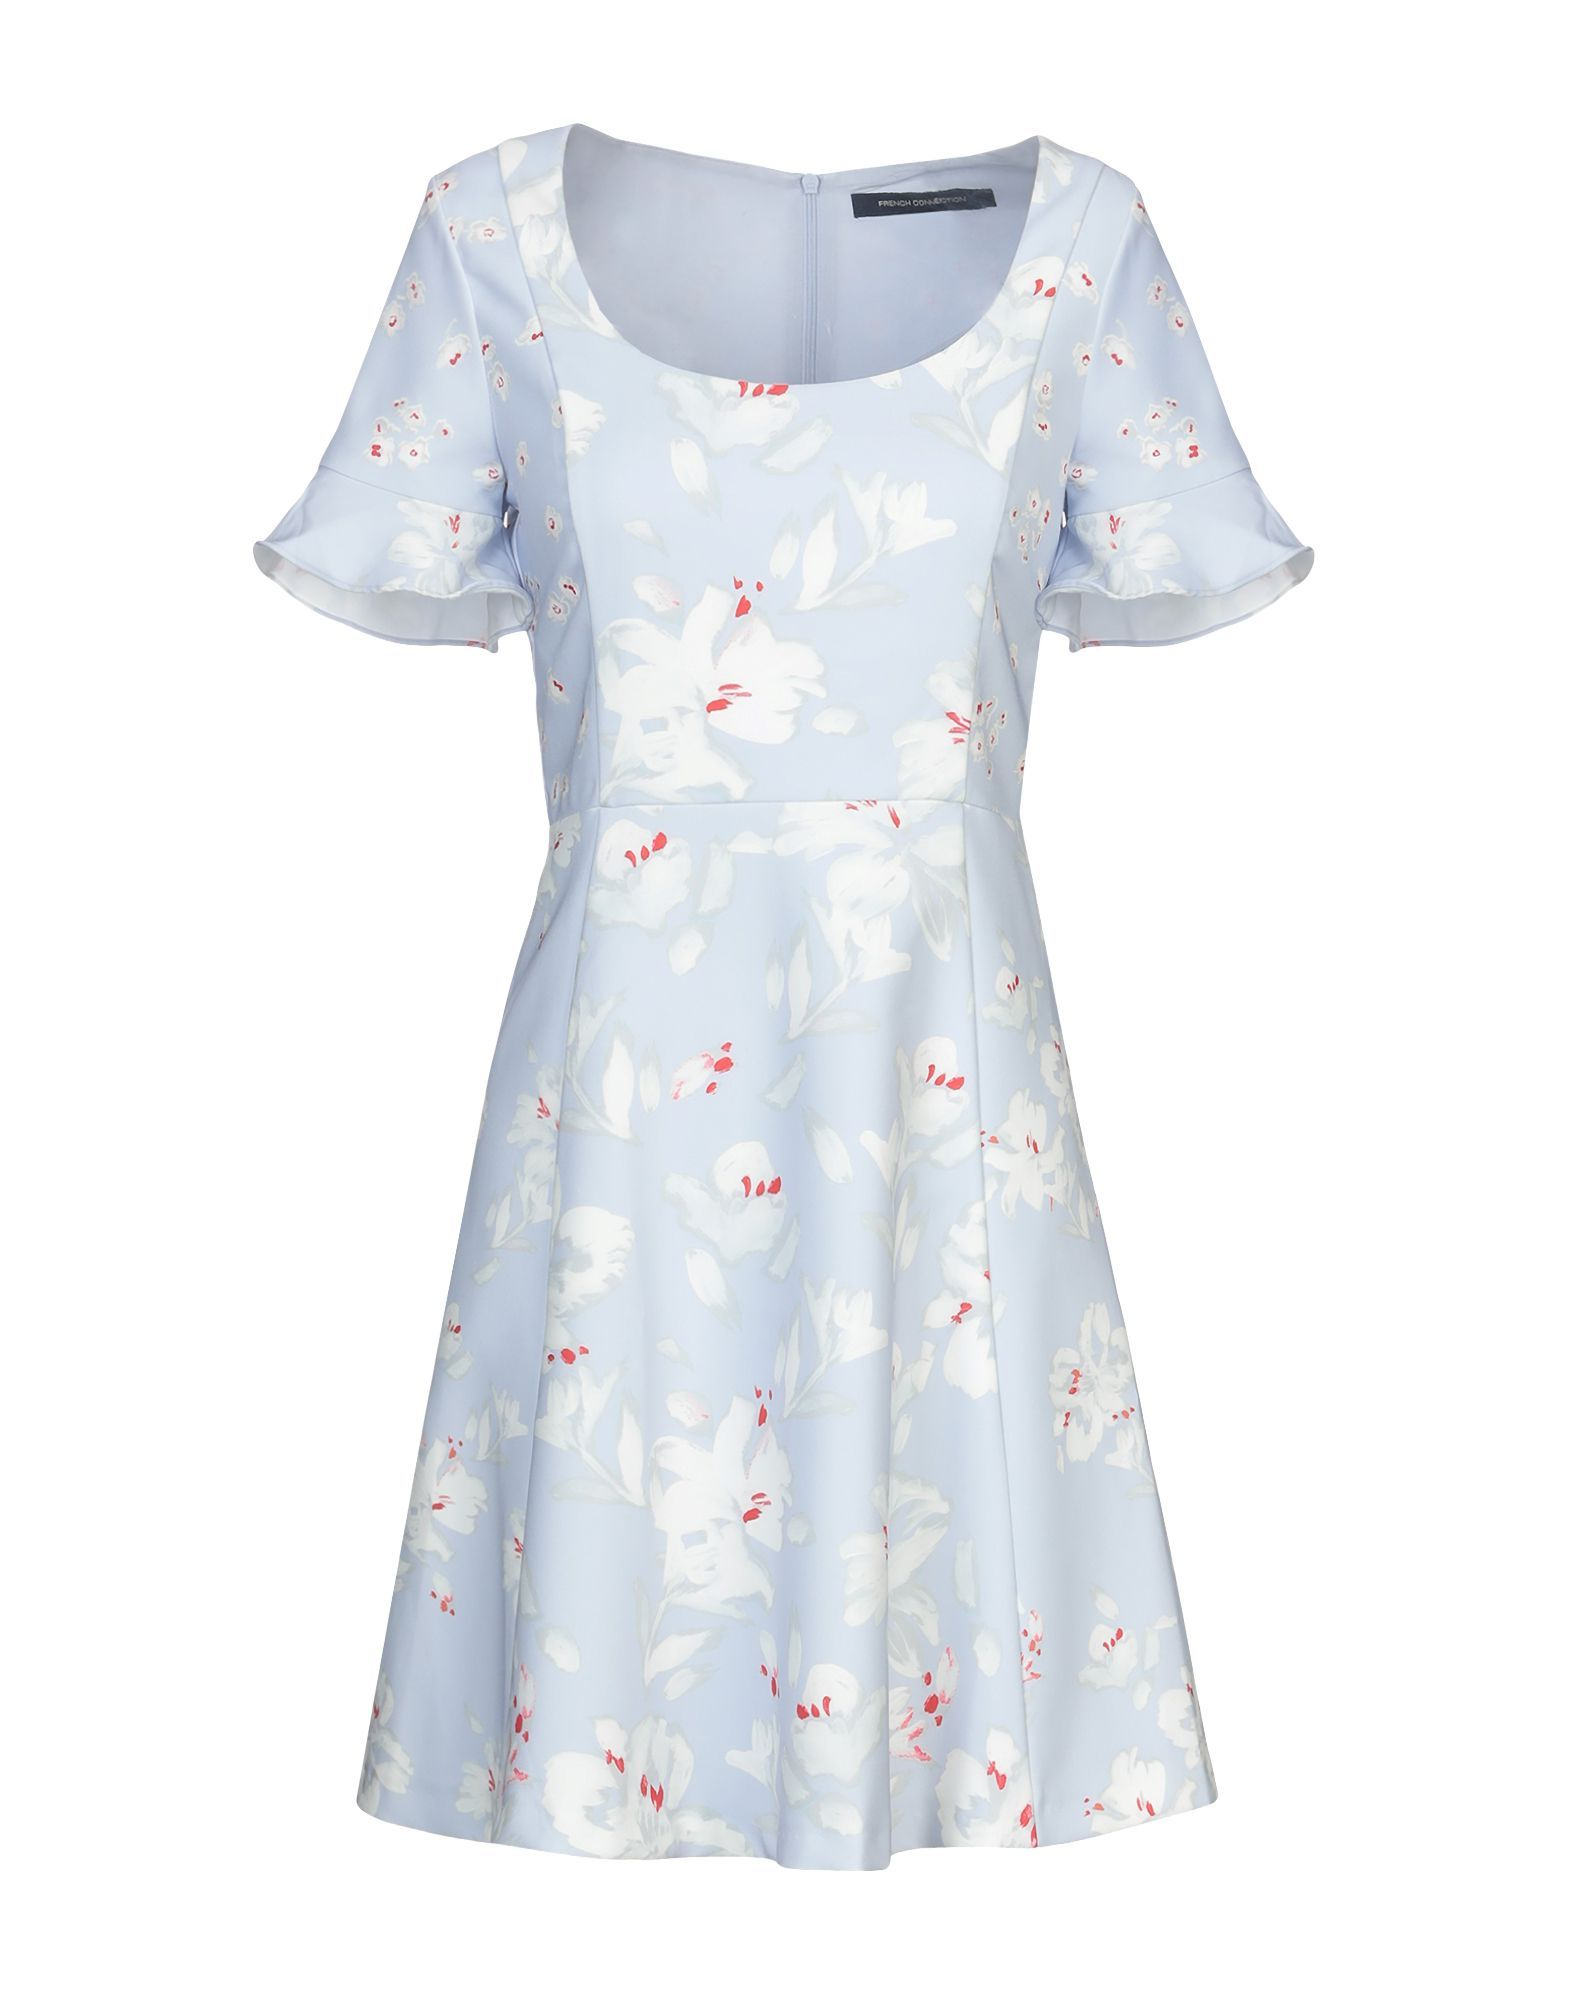 French Connection Sky Blue Print Dress